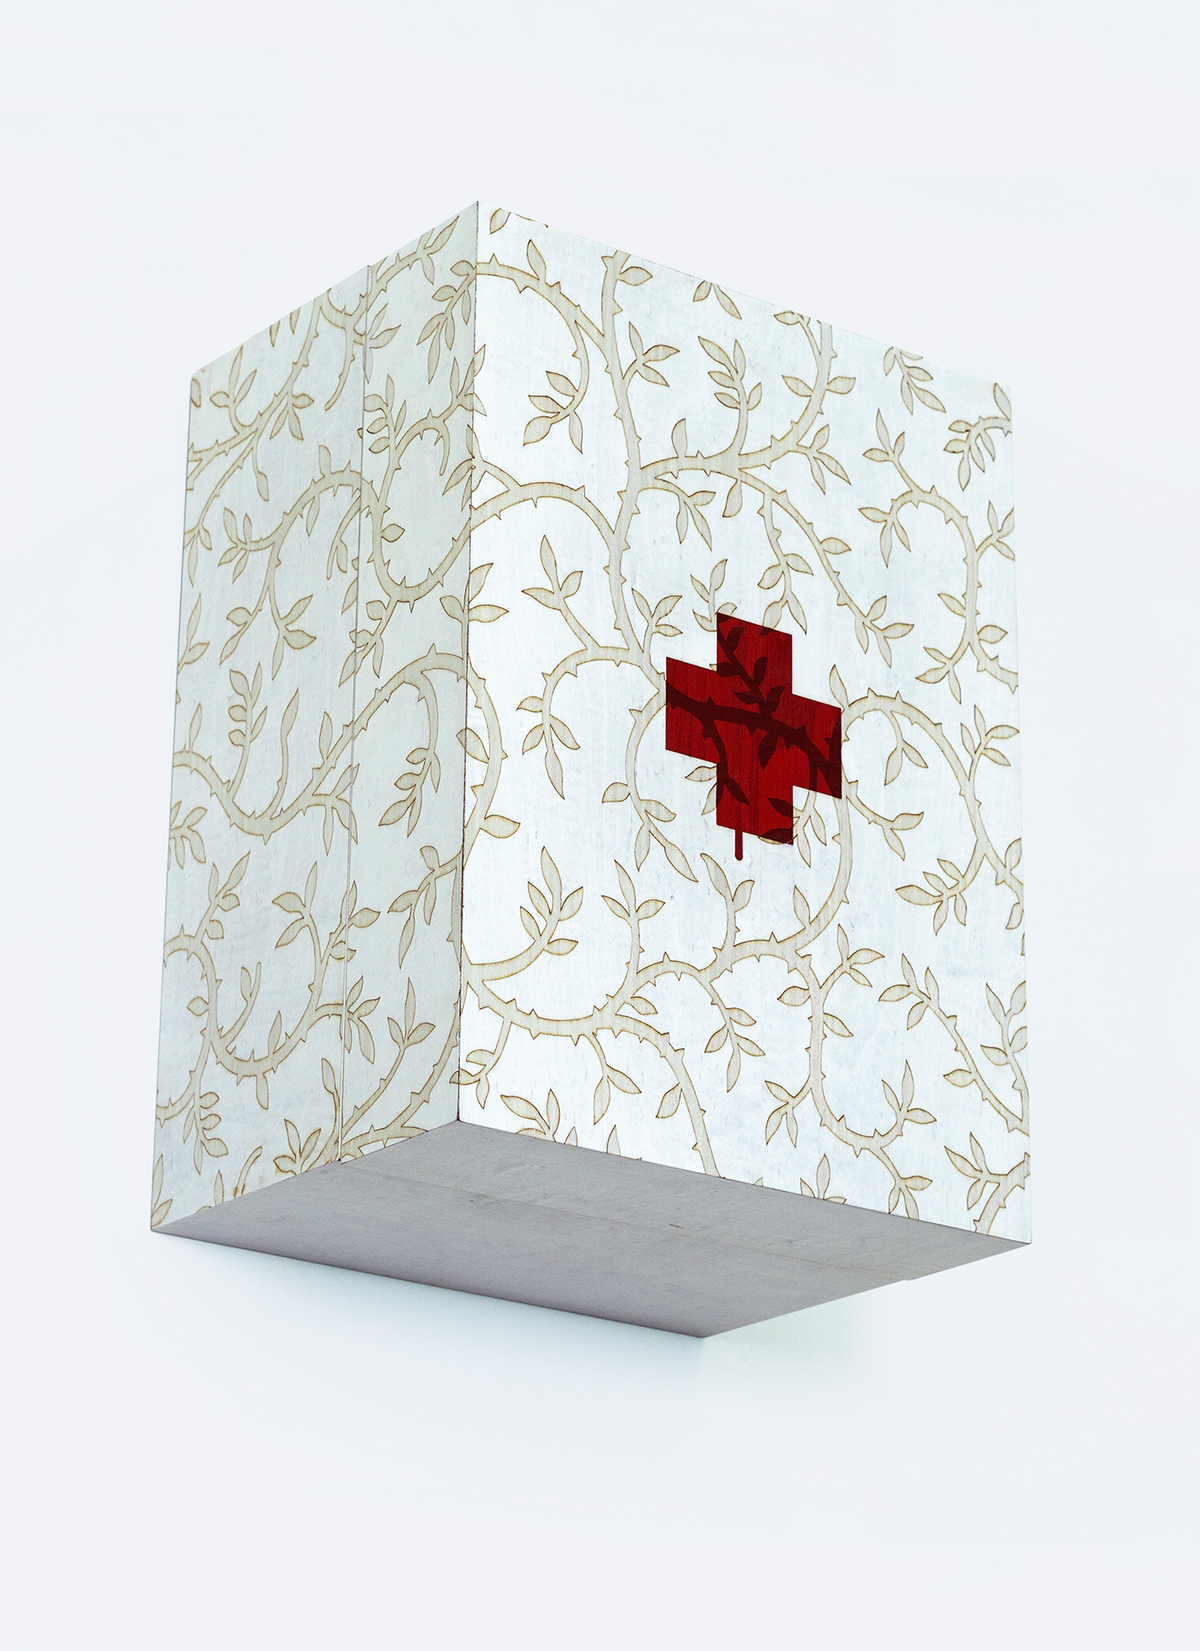 FIRST AID BOX - Marcantonio design